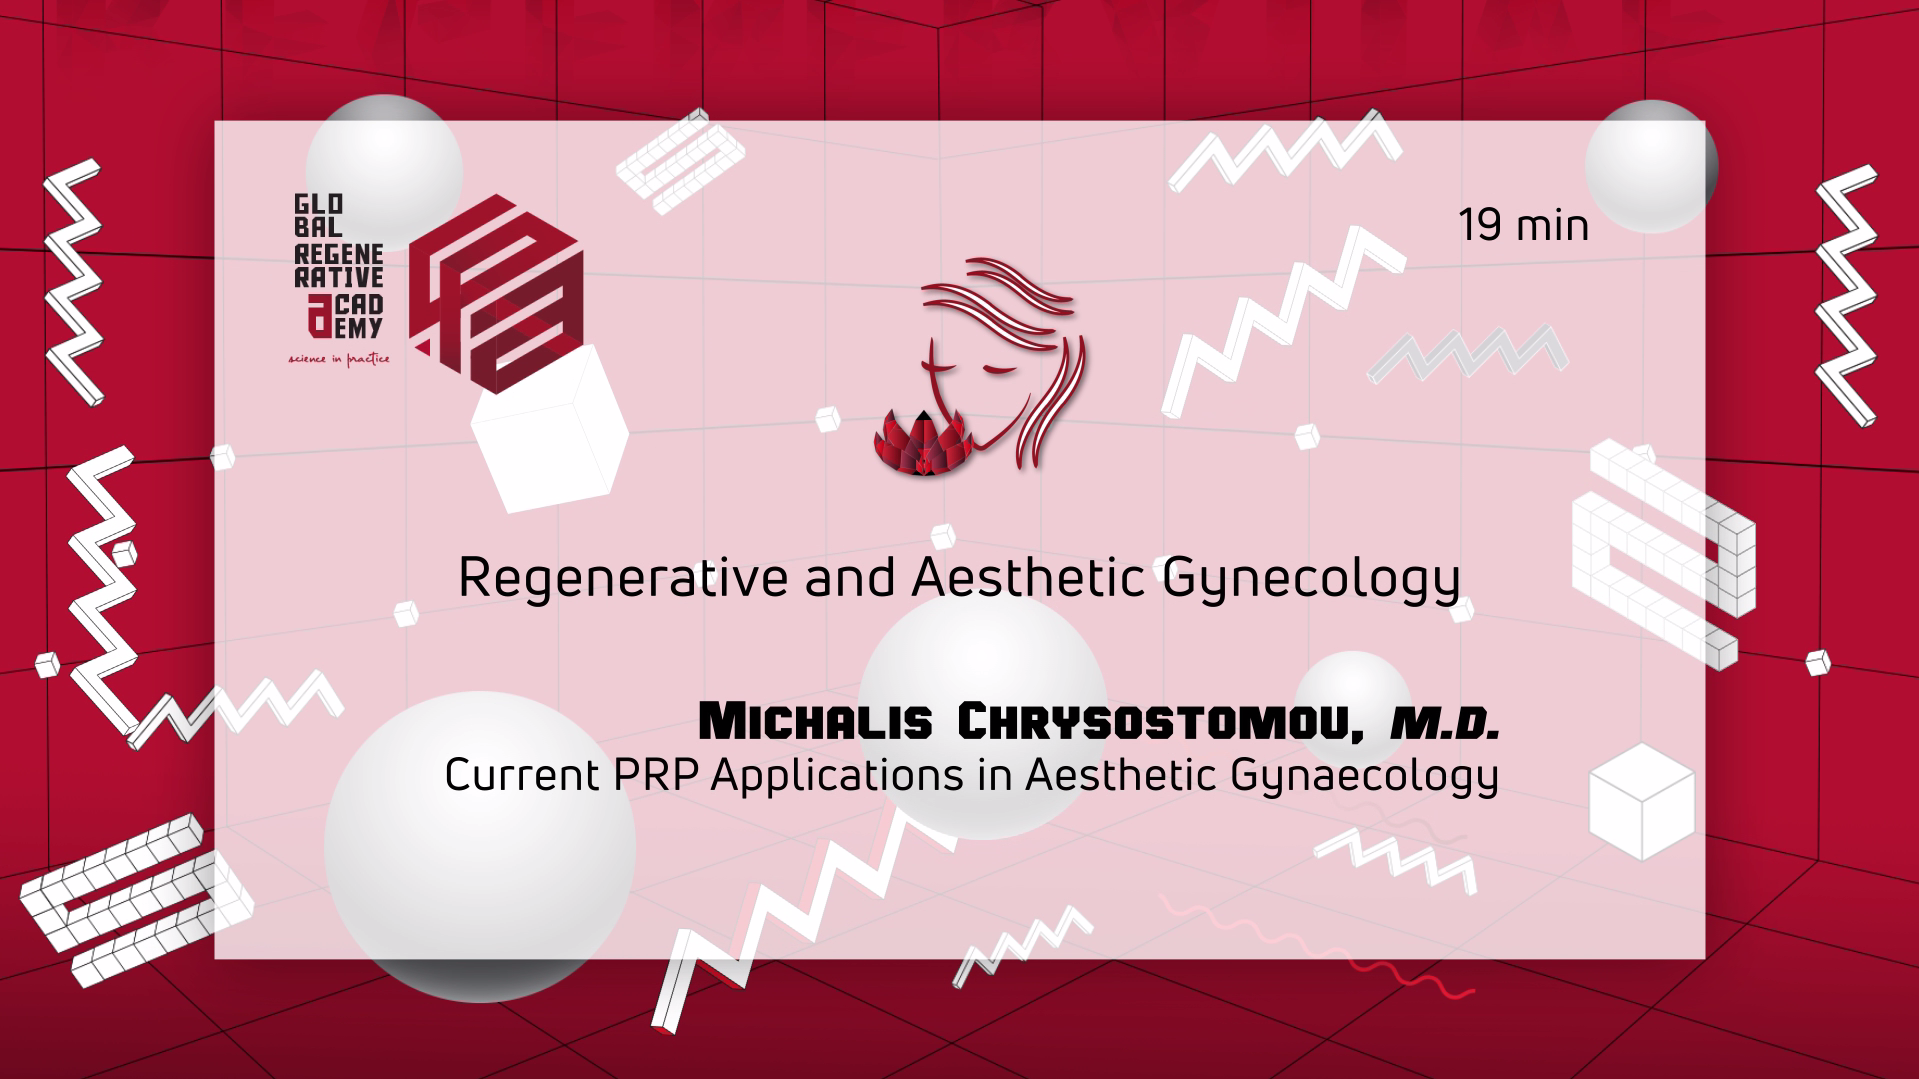 M.D. Michalis Chrysostomou – Current PRP Applications in Aesthetic Gynaecology